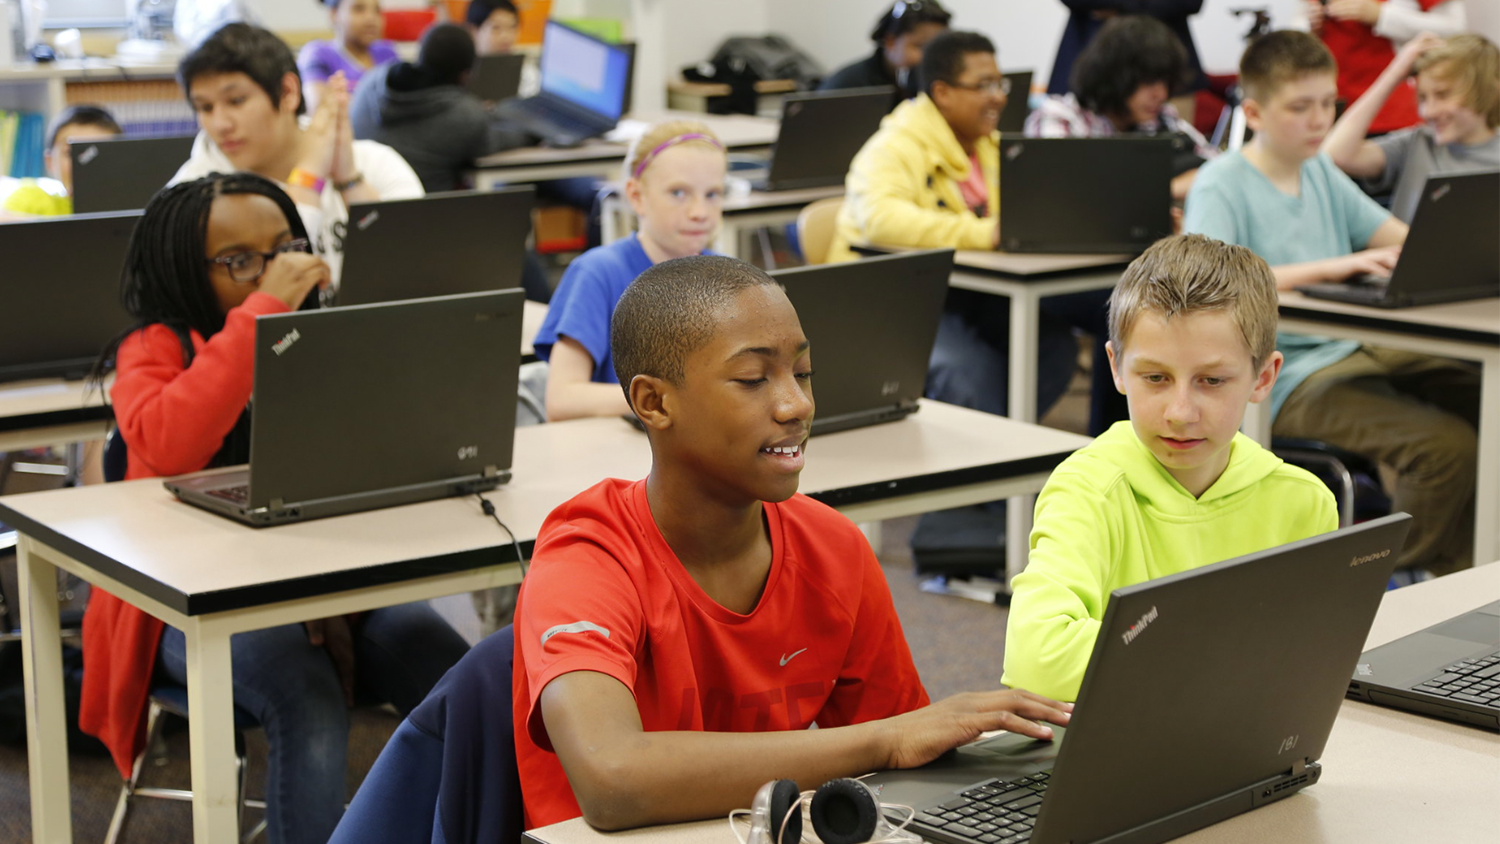 A group of children learn with computers